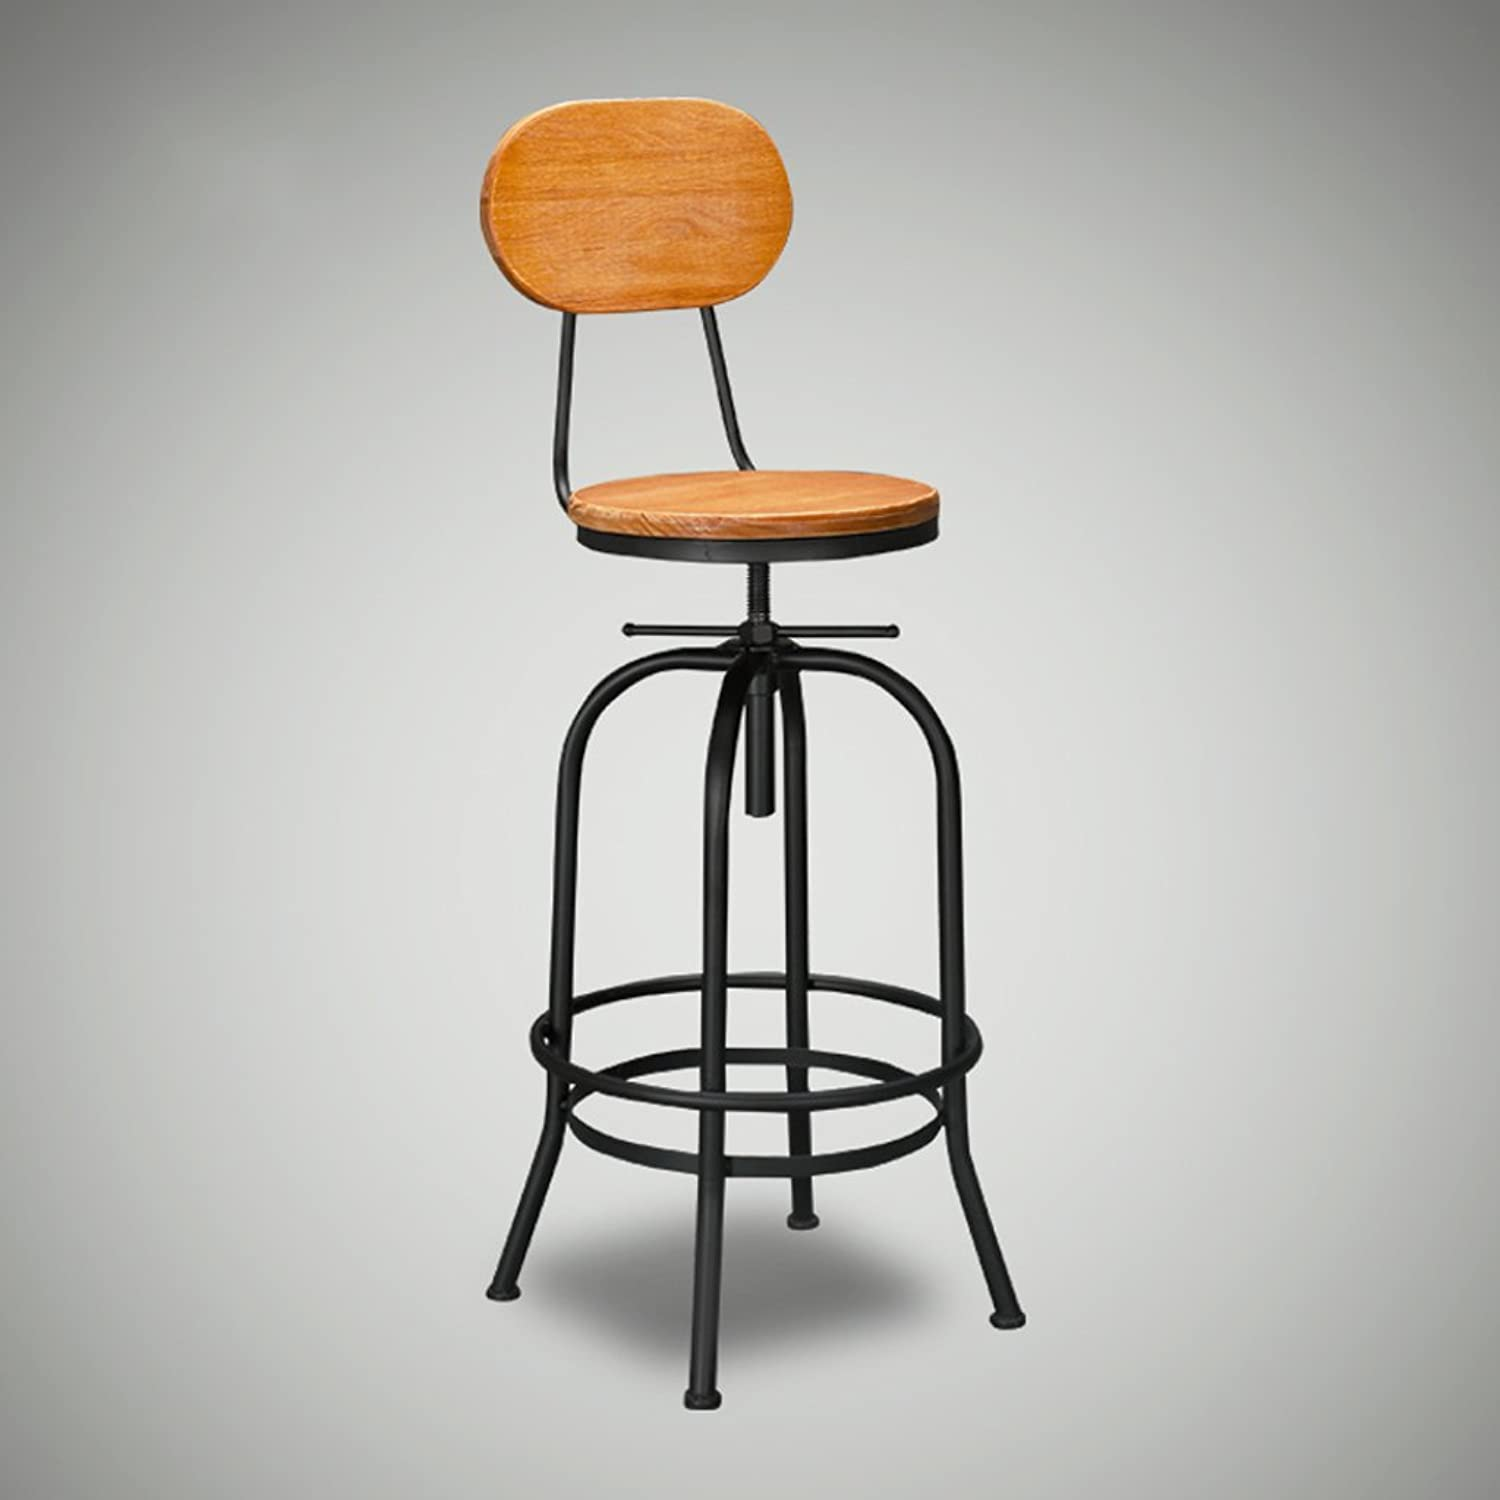 Adjustable Bar Stool, 100% Mango Wood Revolving Seat with Black Metal Frame, 68-90cm High